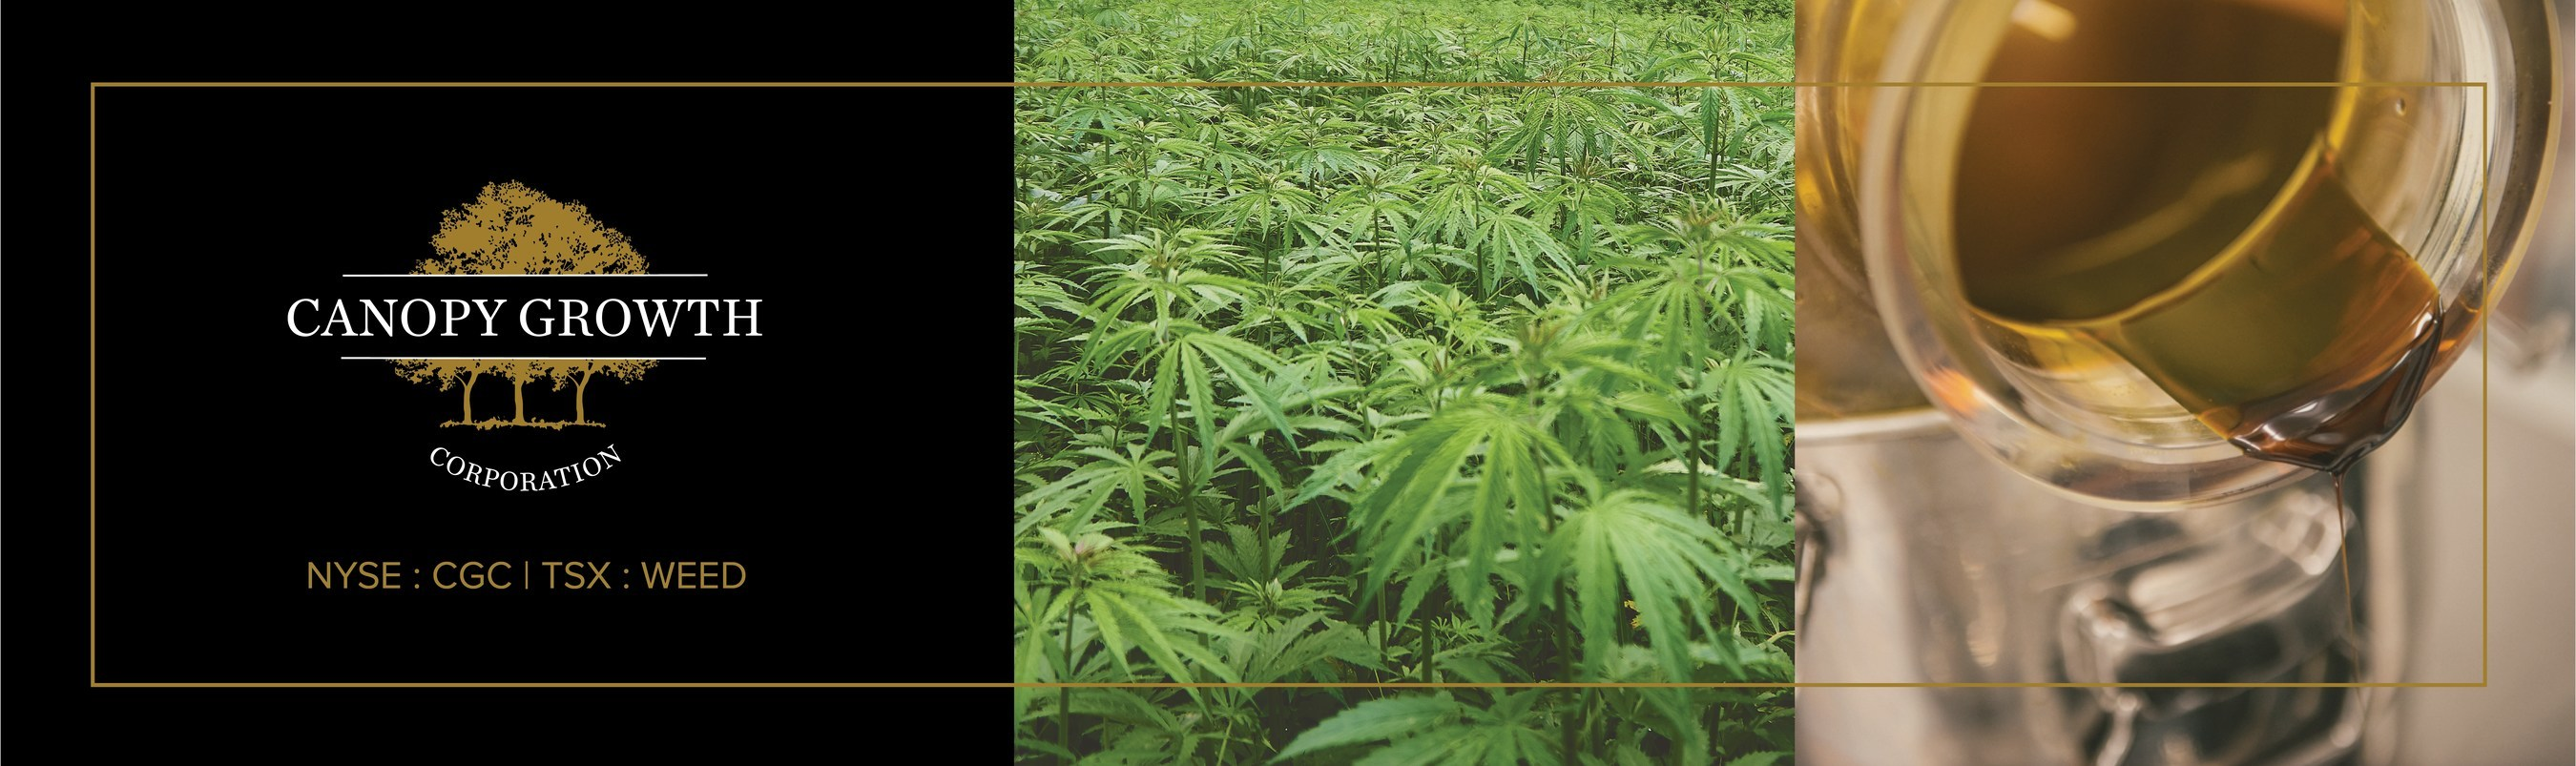 Hemp pioneer Geoff Whaling to join Canopy Growth USA as Strategic Advisor, Hemp and CBD in addition to being the co-Founder and President of Hemp Developments LLC. (CNW Group/Canopy Growth Corporation)